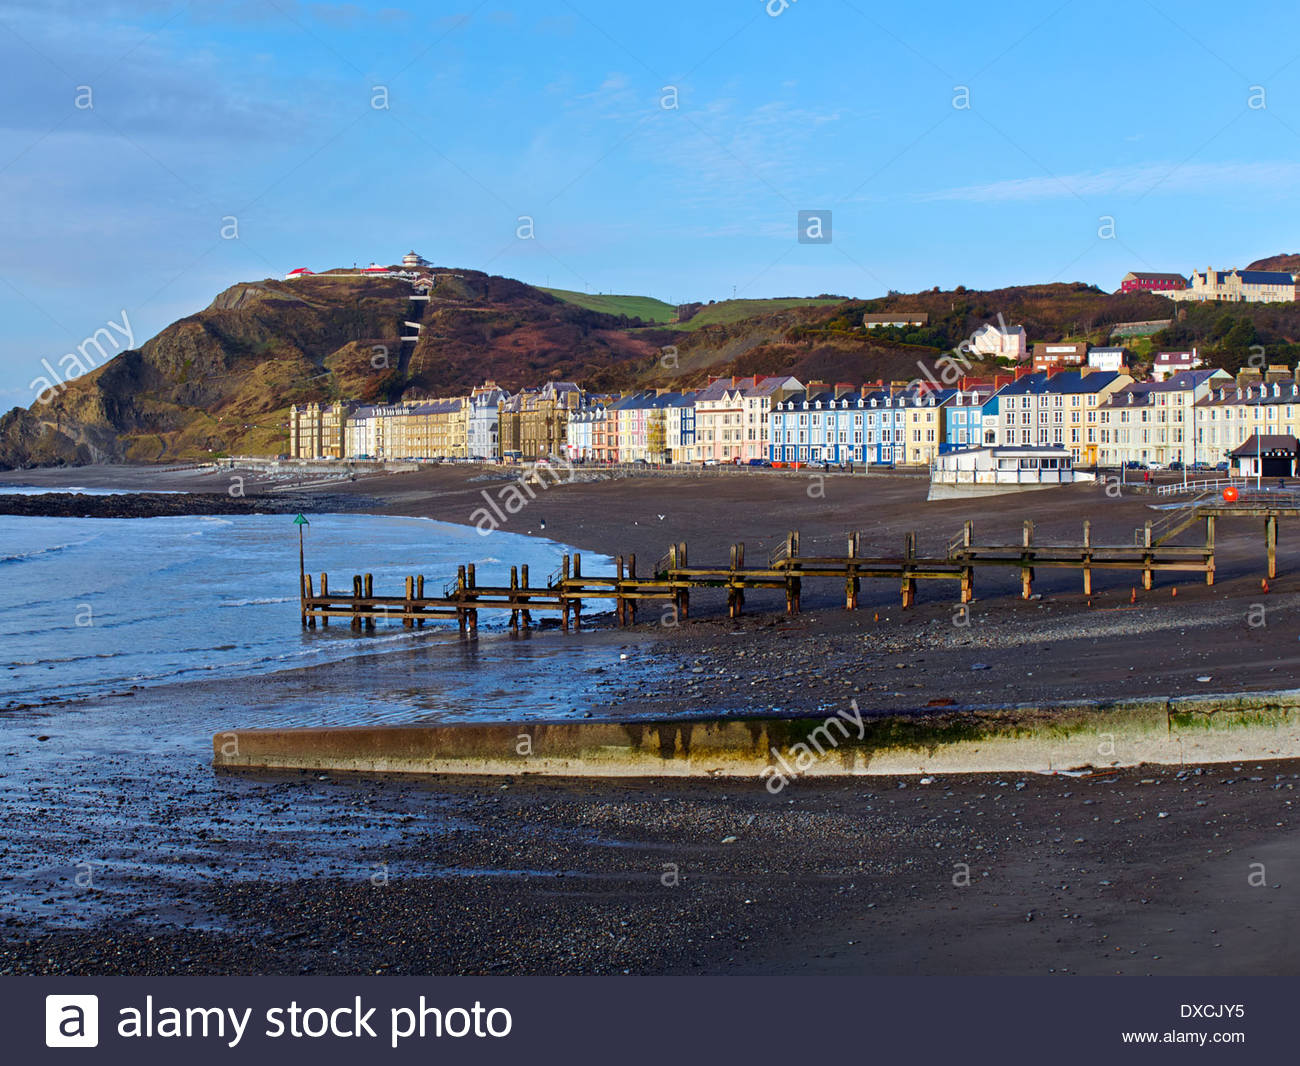 Constitution Hill Mid-Wales, looking across cardigan bay to marine terrace and constitution ...